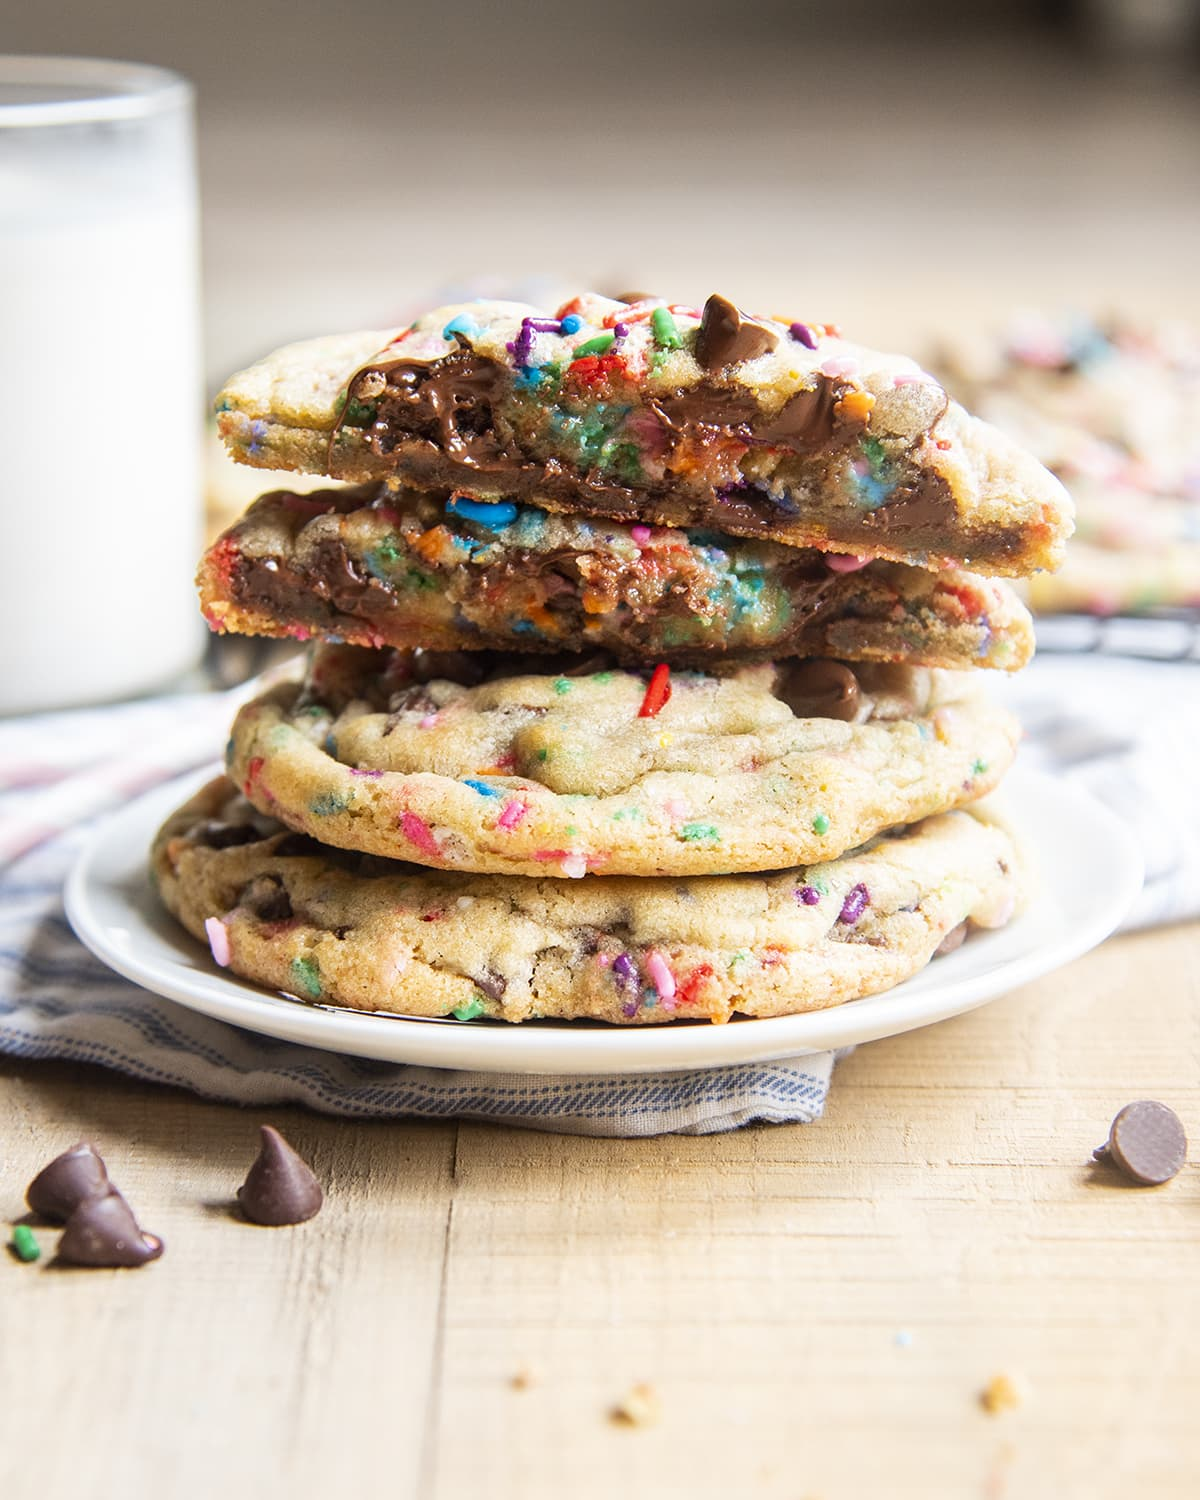 A plate stacked with funfetti chocolate chip cookies. The top is cut in half showing the melty chocolate.